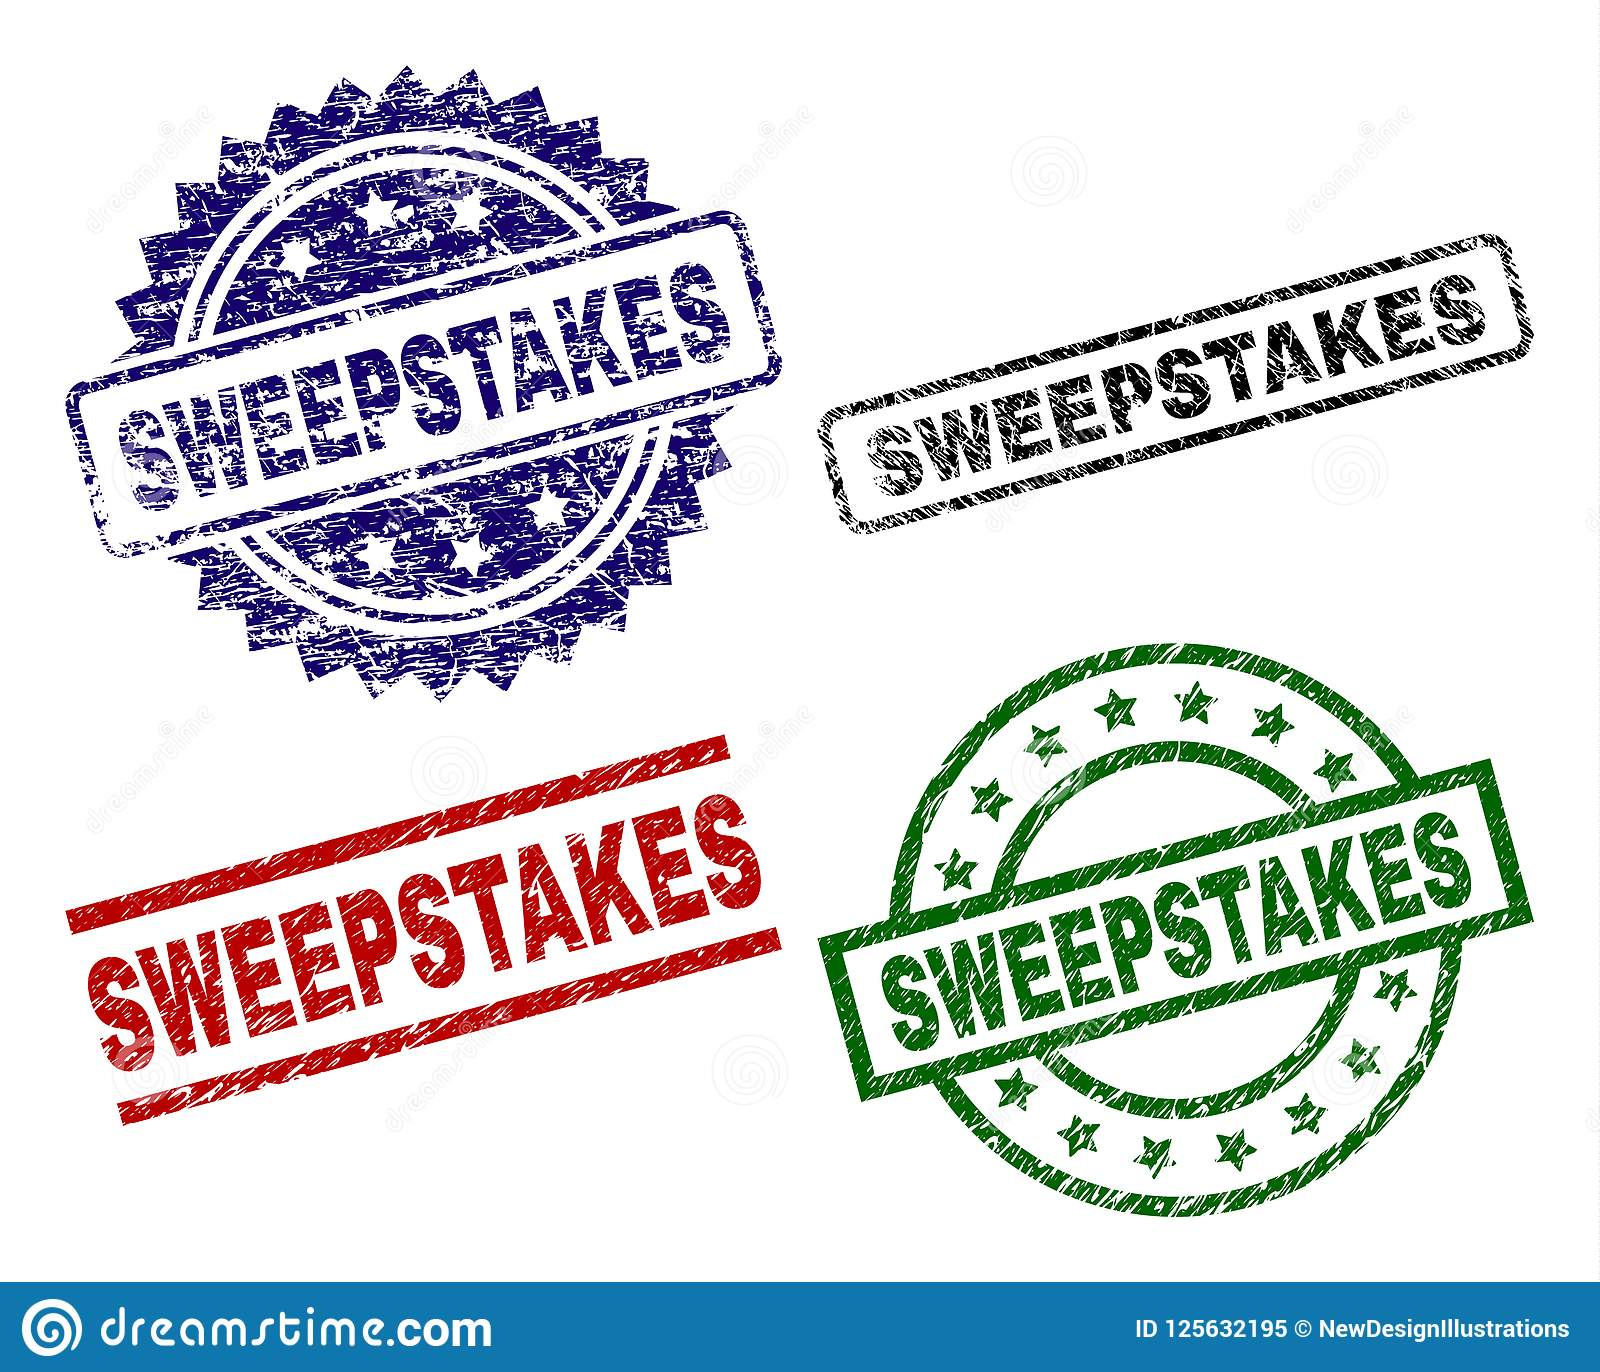 About style tag sweepstakes